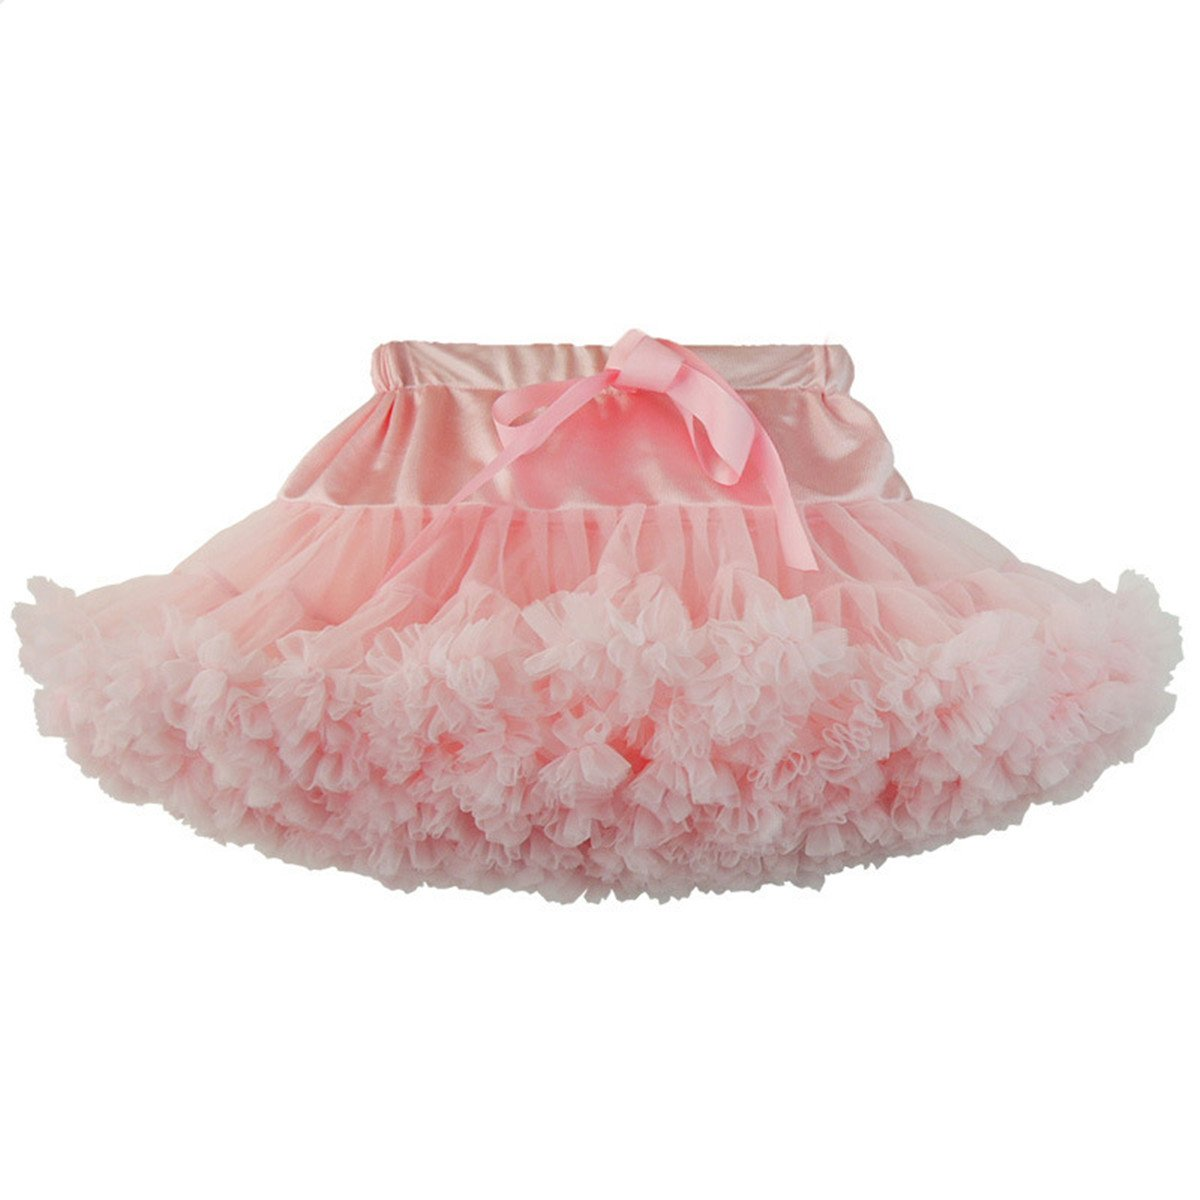 WYR Girls Pleated Soft Tulle Multi Layer Tutu Skirt Tiered Pettiskirt,Princess Skirt Ballet or Clubwear Pink,Girl,M